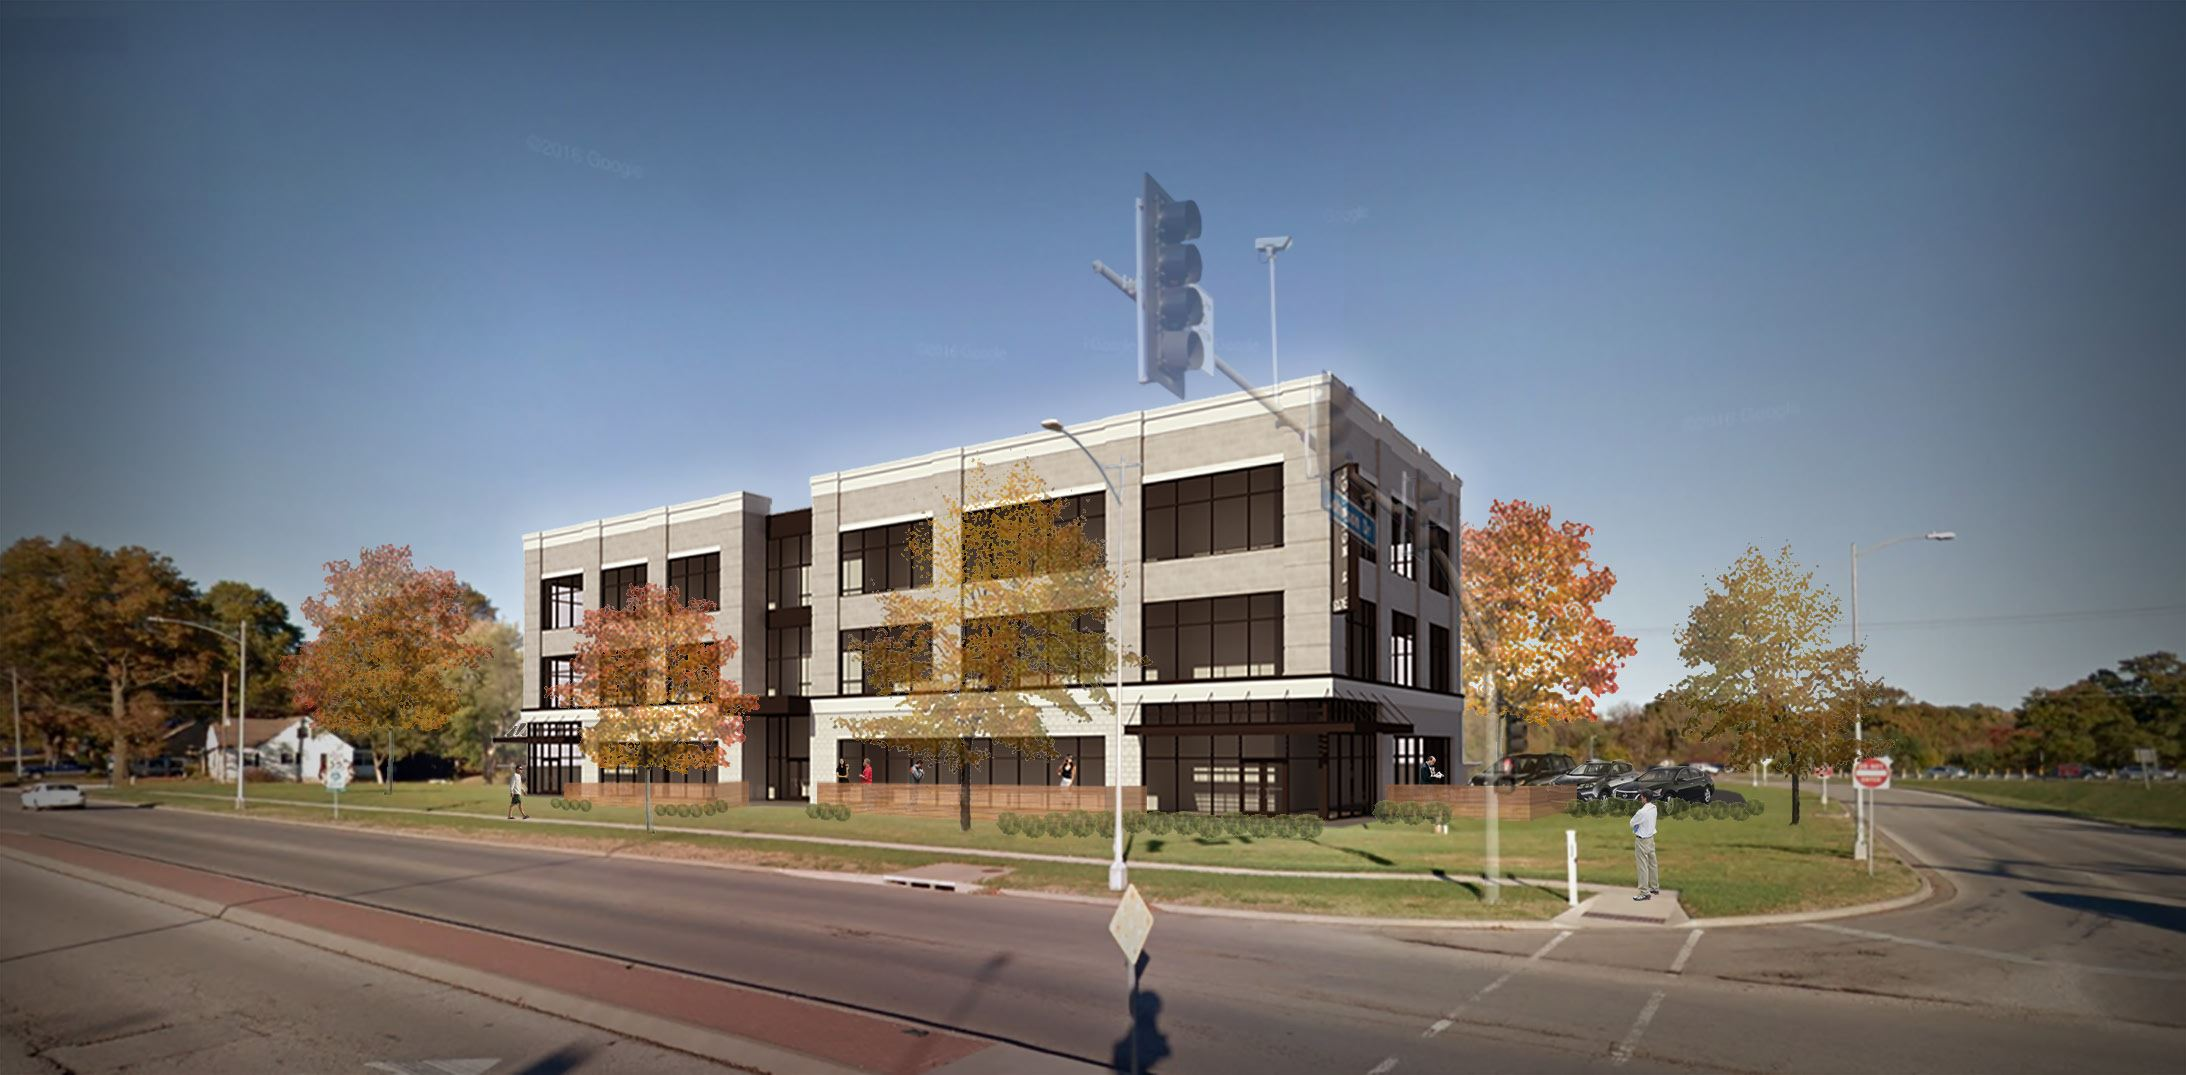 Colliers Rendering of a 3 Story Building Johnson and Roe